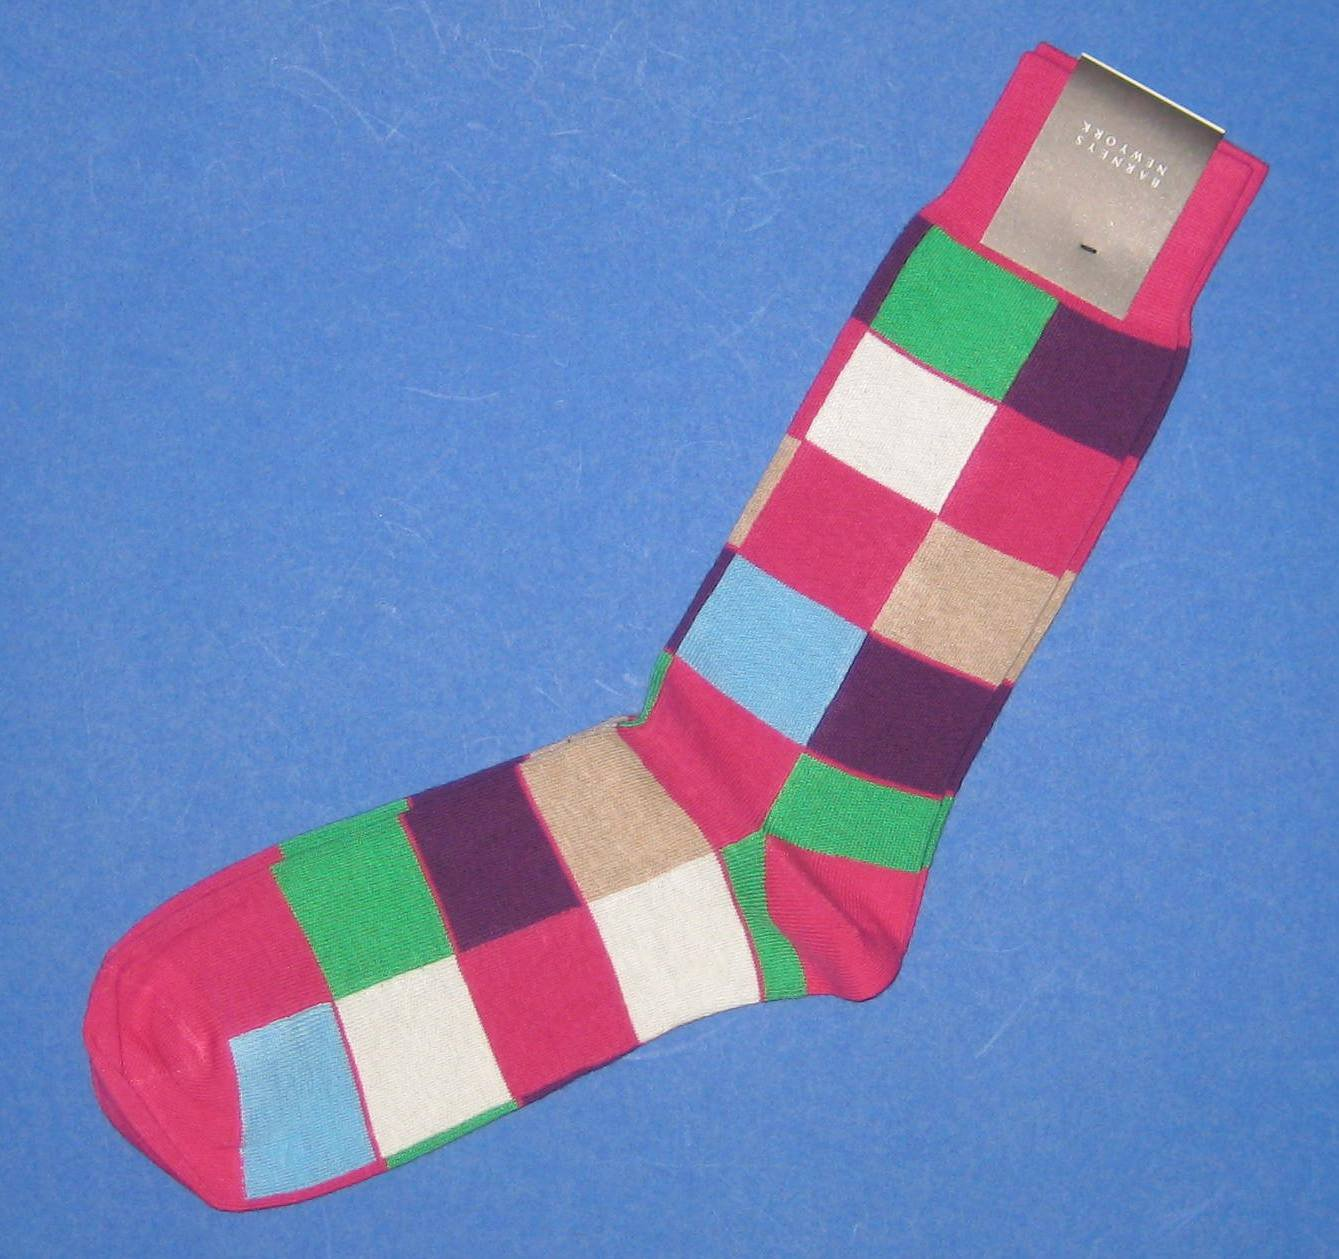 NWT Barneys New York Italian Made Cotton Knit Multi-colored Square Cubes Socks